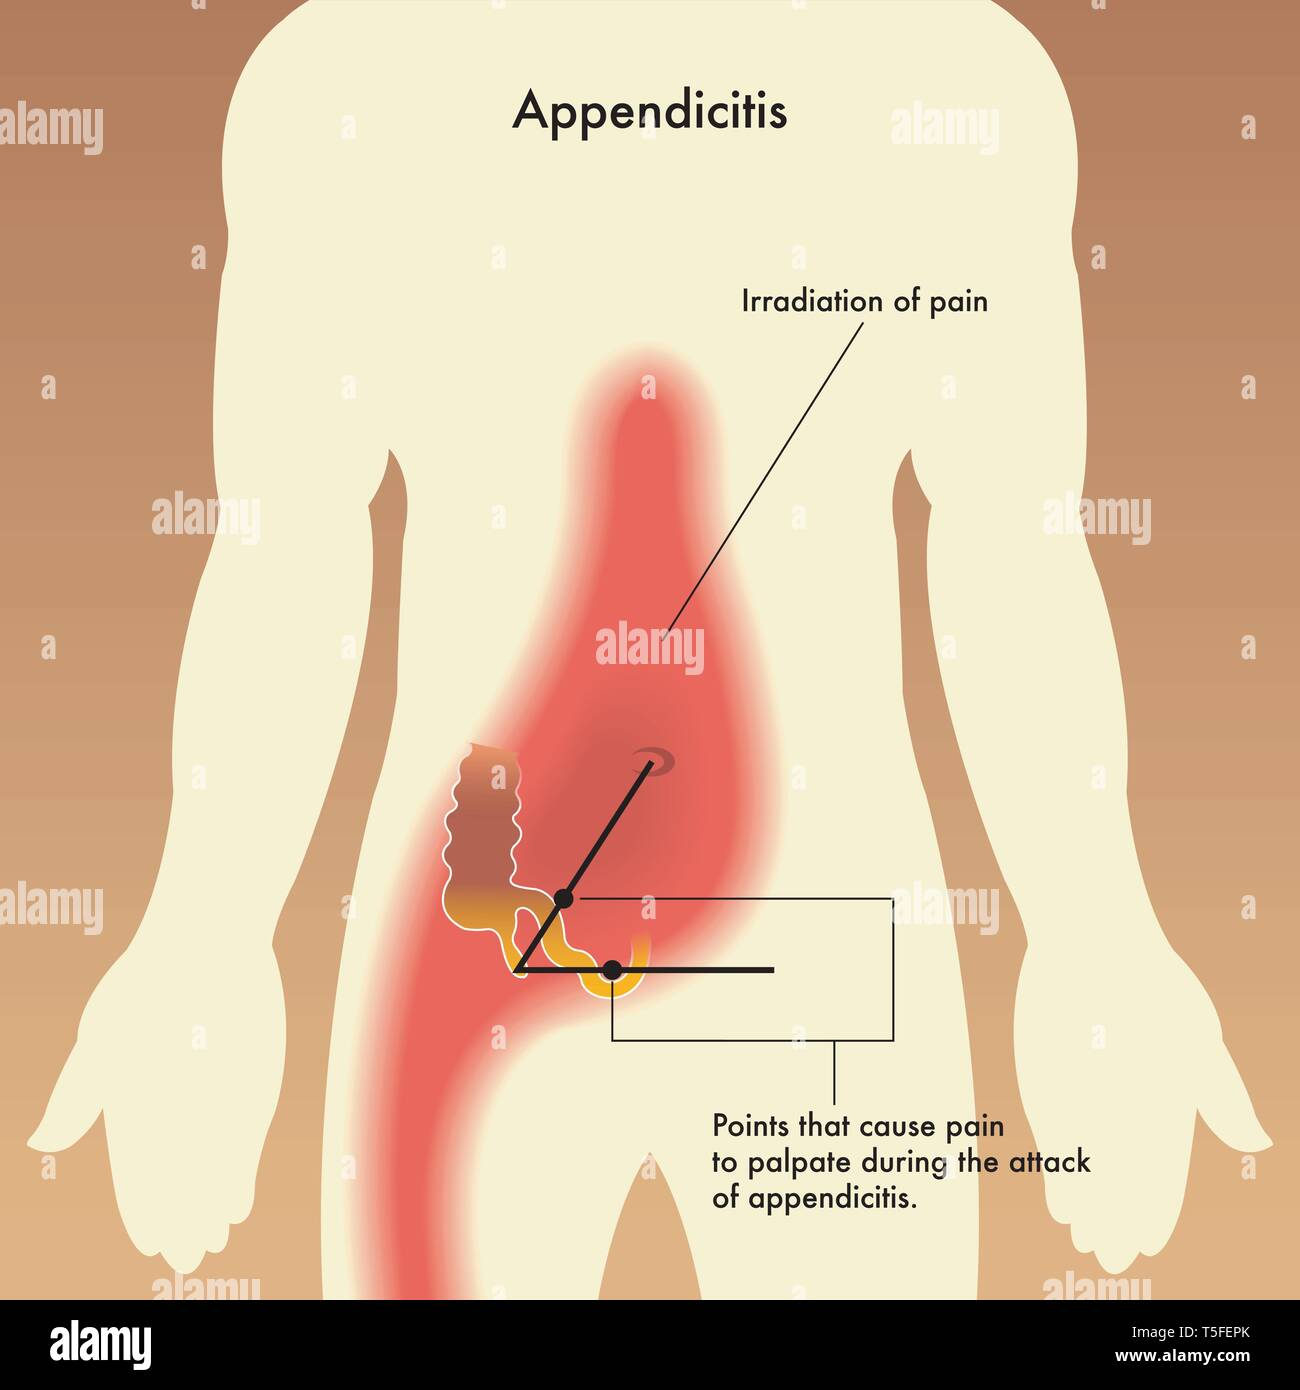 medical illustration showing the points that cause pain to palpate during the attack of appendicitis. - Stock Image